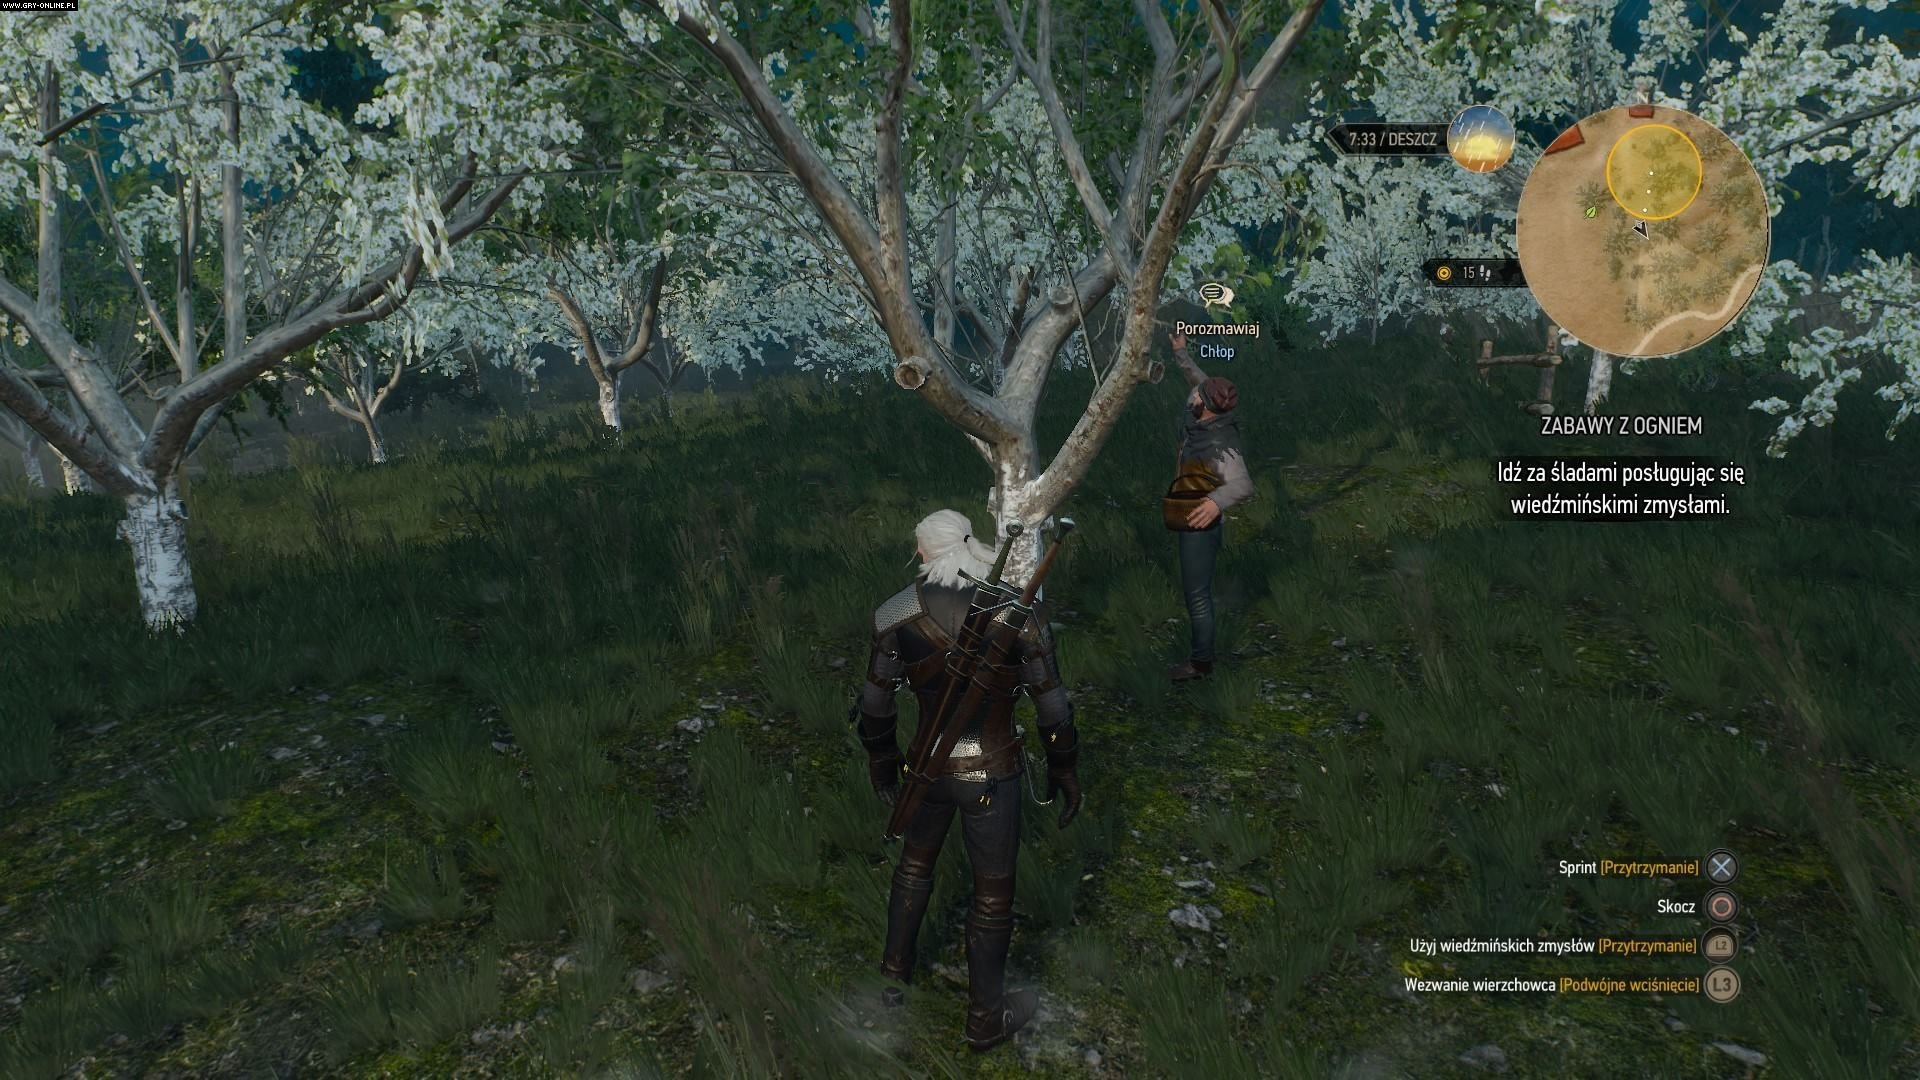 The Witcher 3: Wild Hunt PS4 Games Image 6/185, CD Projekt RED, Bandai Namco Entertainment